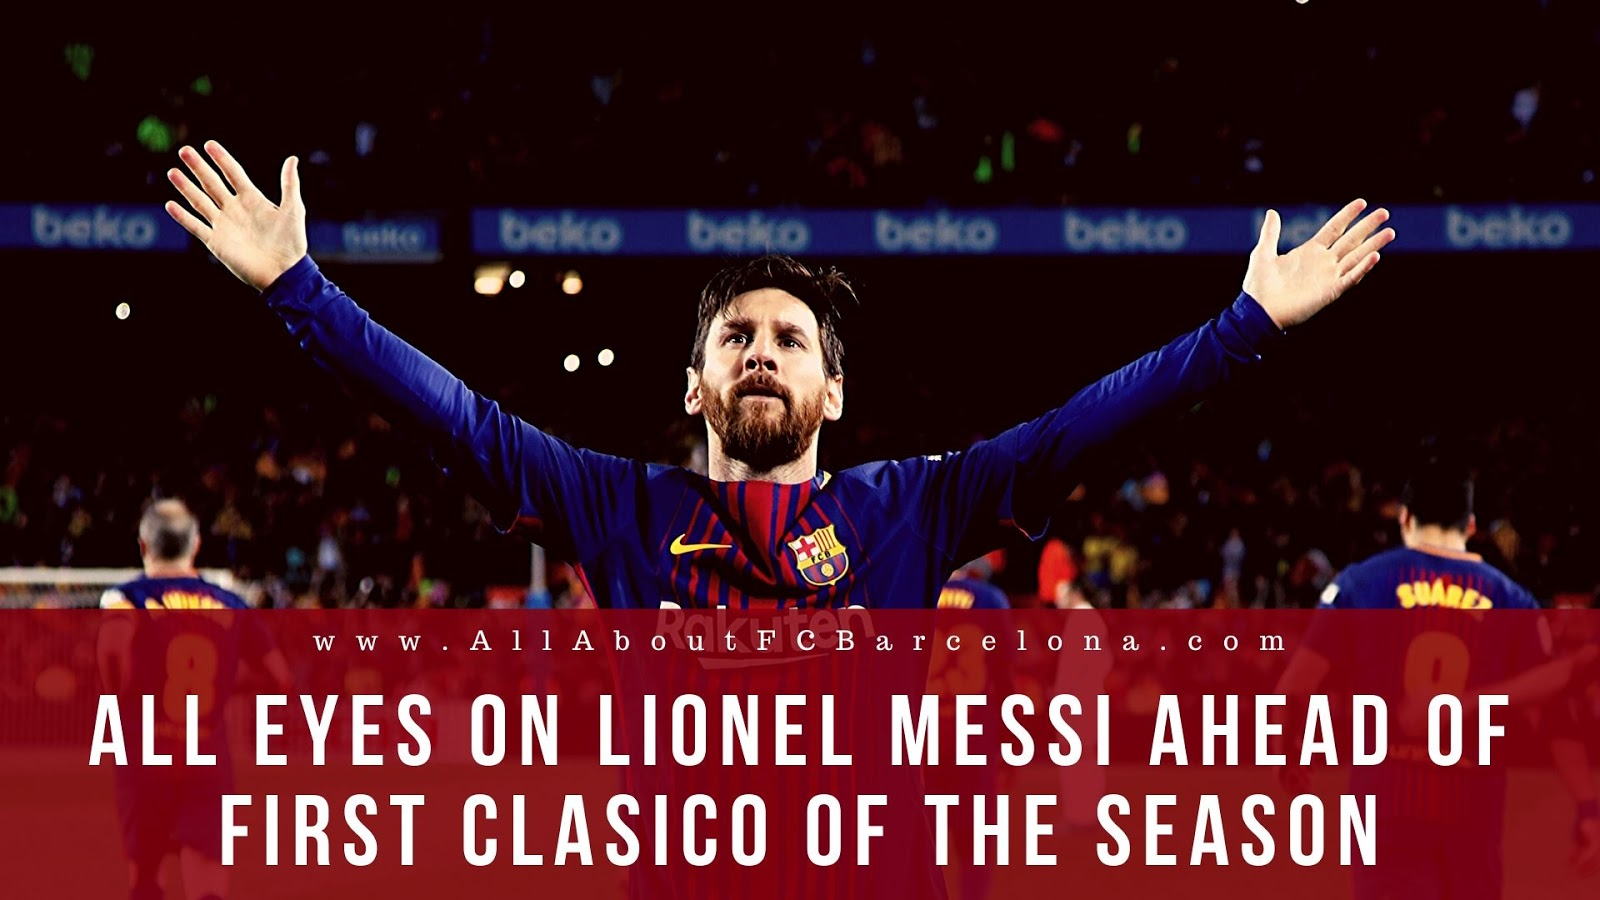 Barcelona Starts as Favourites in the First Clasico of the Season